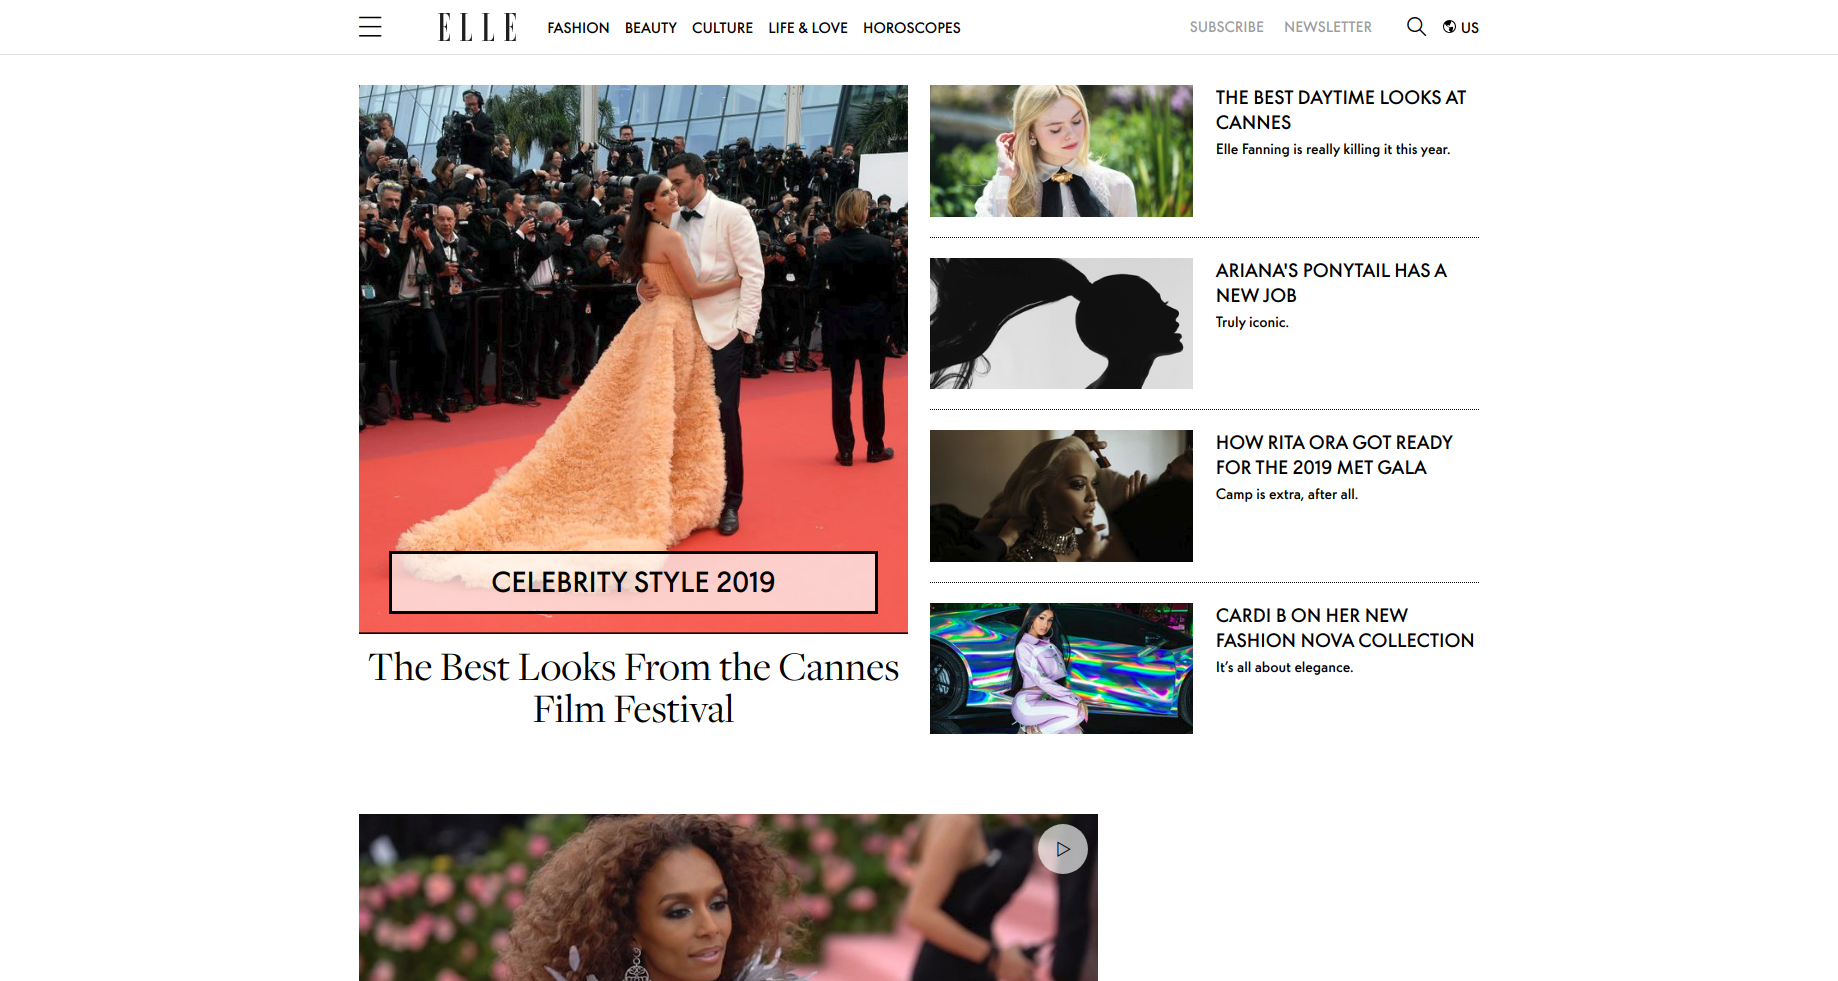 ELLE website built on eZ platform